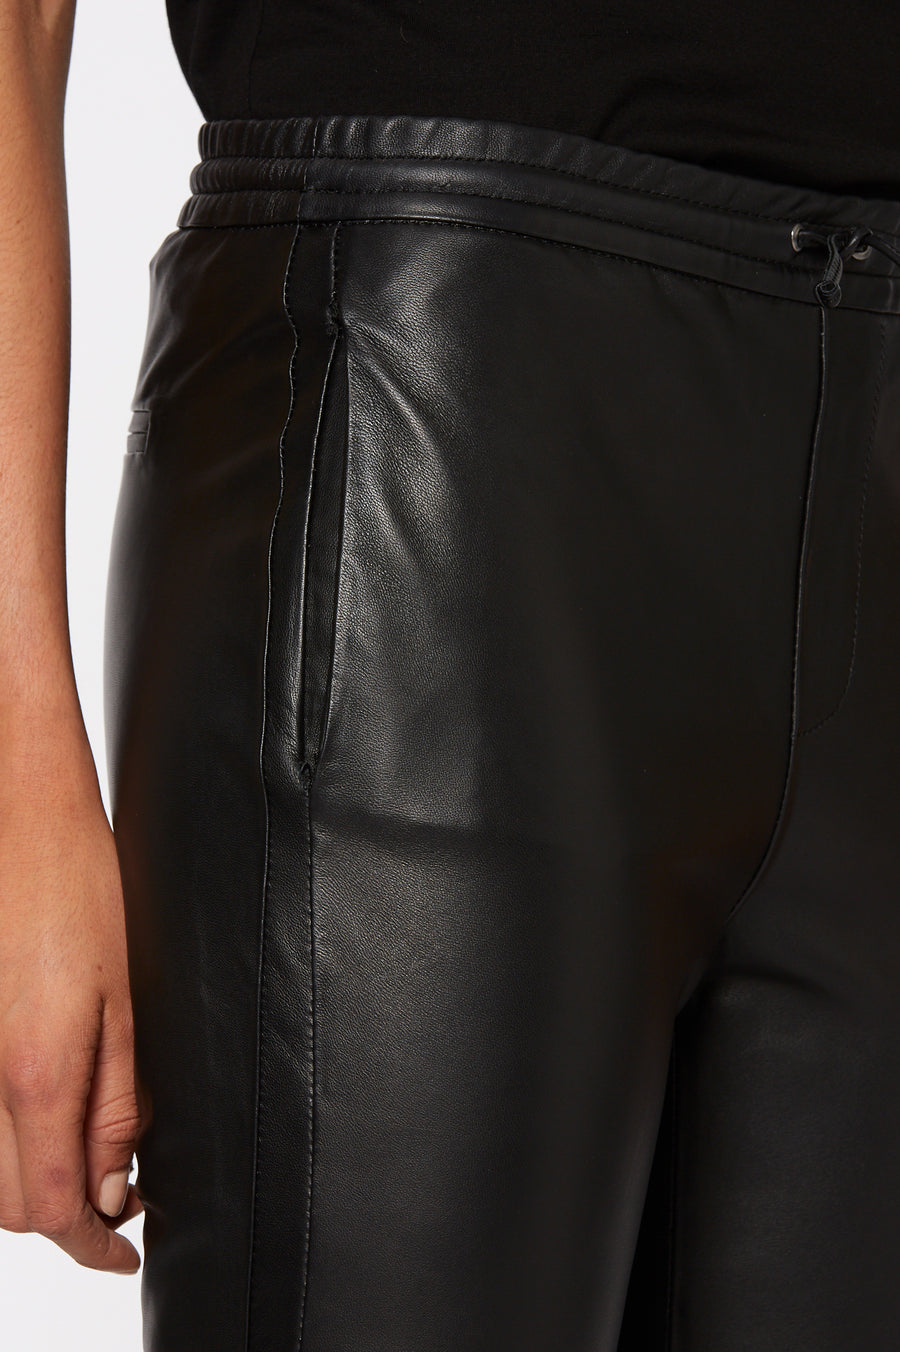 LEATHER JOGGER, DRAWSTRING CLOSURE, FALLS JUST BELOW ANKLE, BLACK color